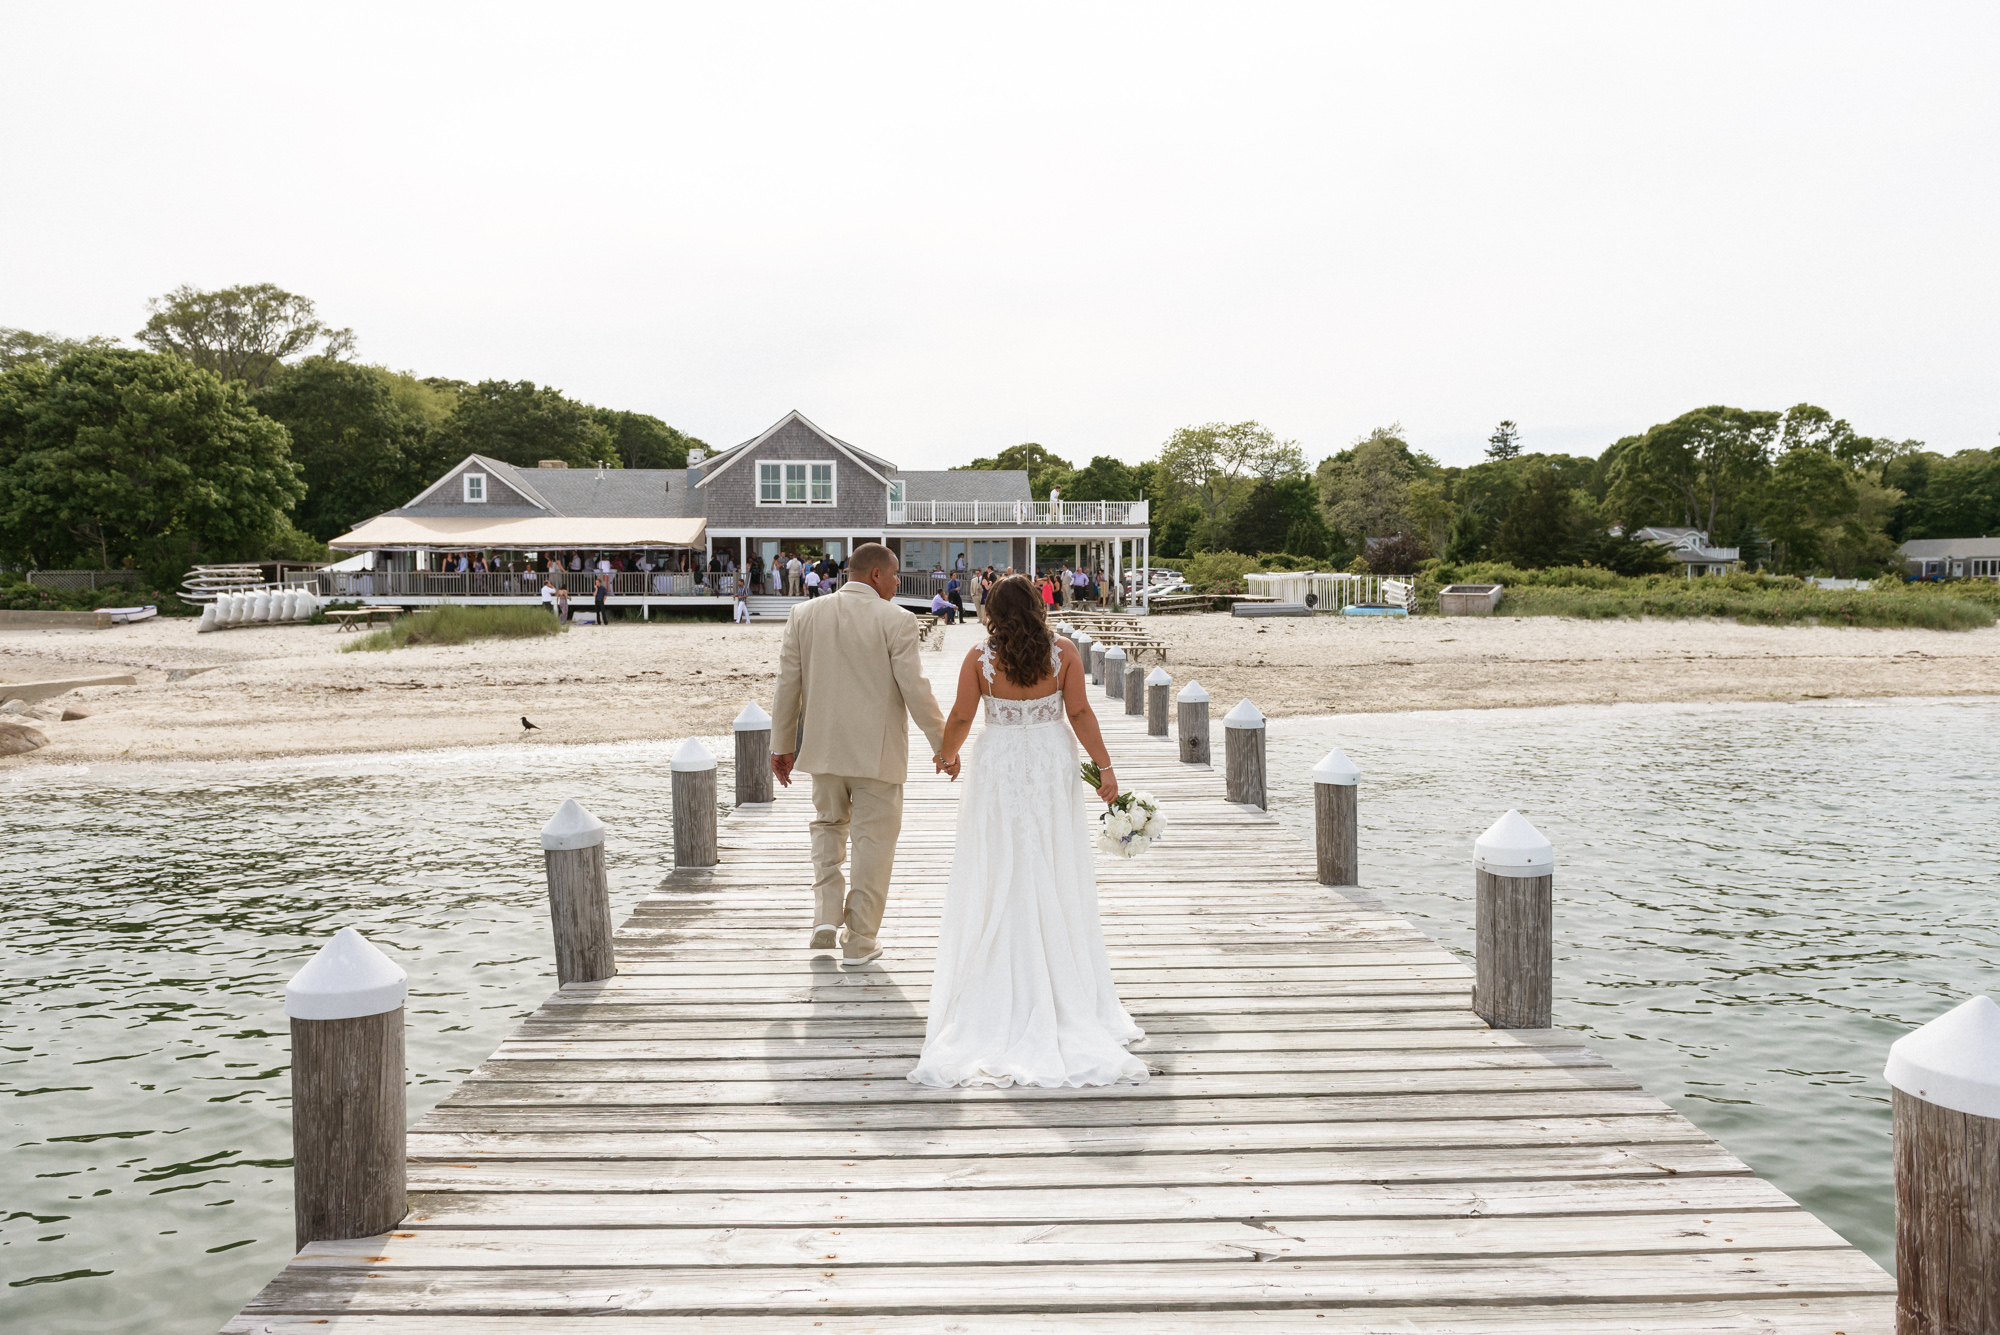 A bride and groom walking on a pier at the Vineyard Haven Yacht Club martha's vineyard wedding venues photo by David Welch Photography